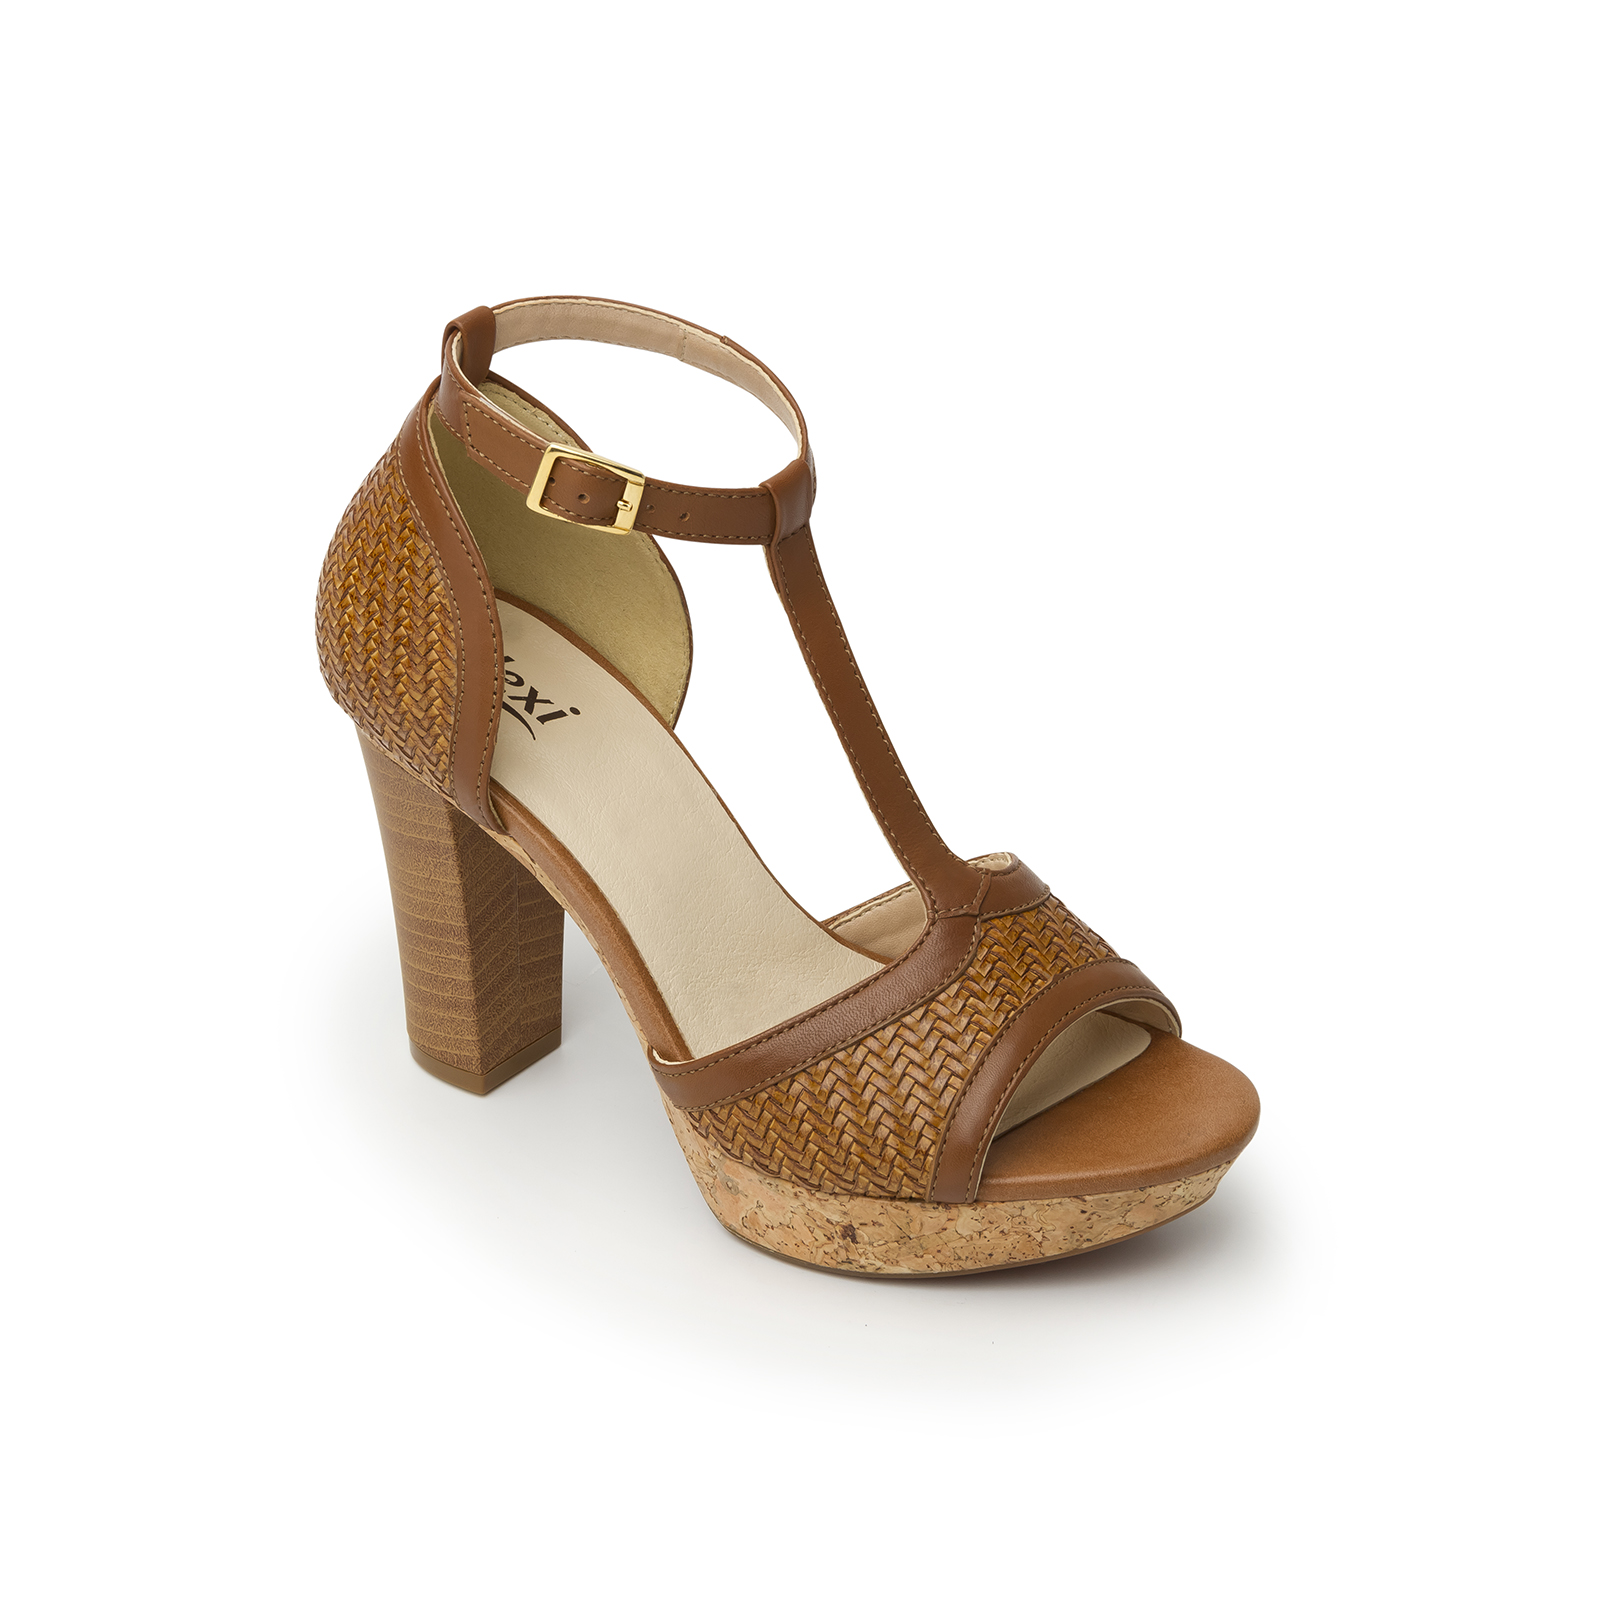 Chic 32011 In Cafe Womens Pumps Flexi Shoes United States